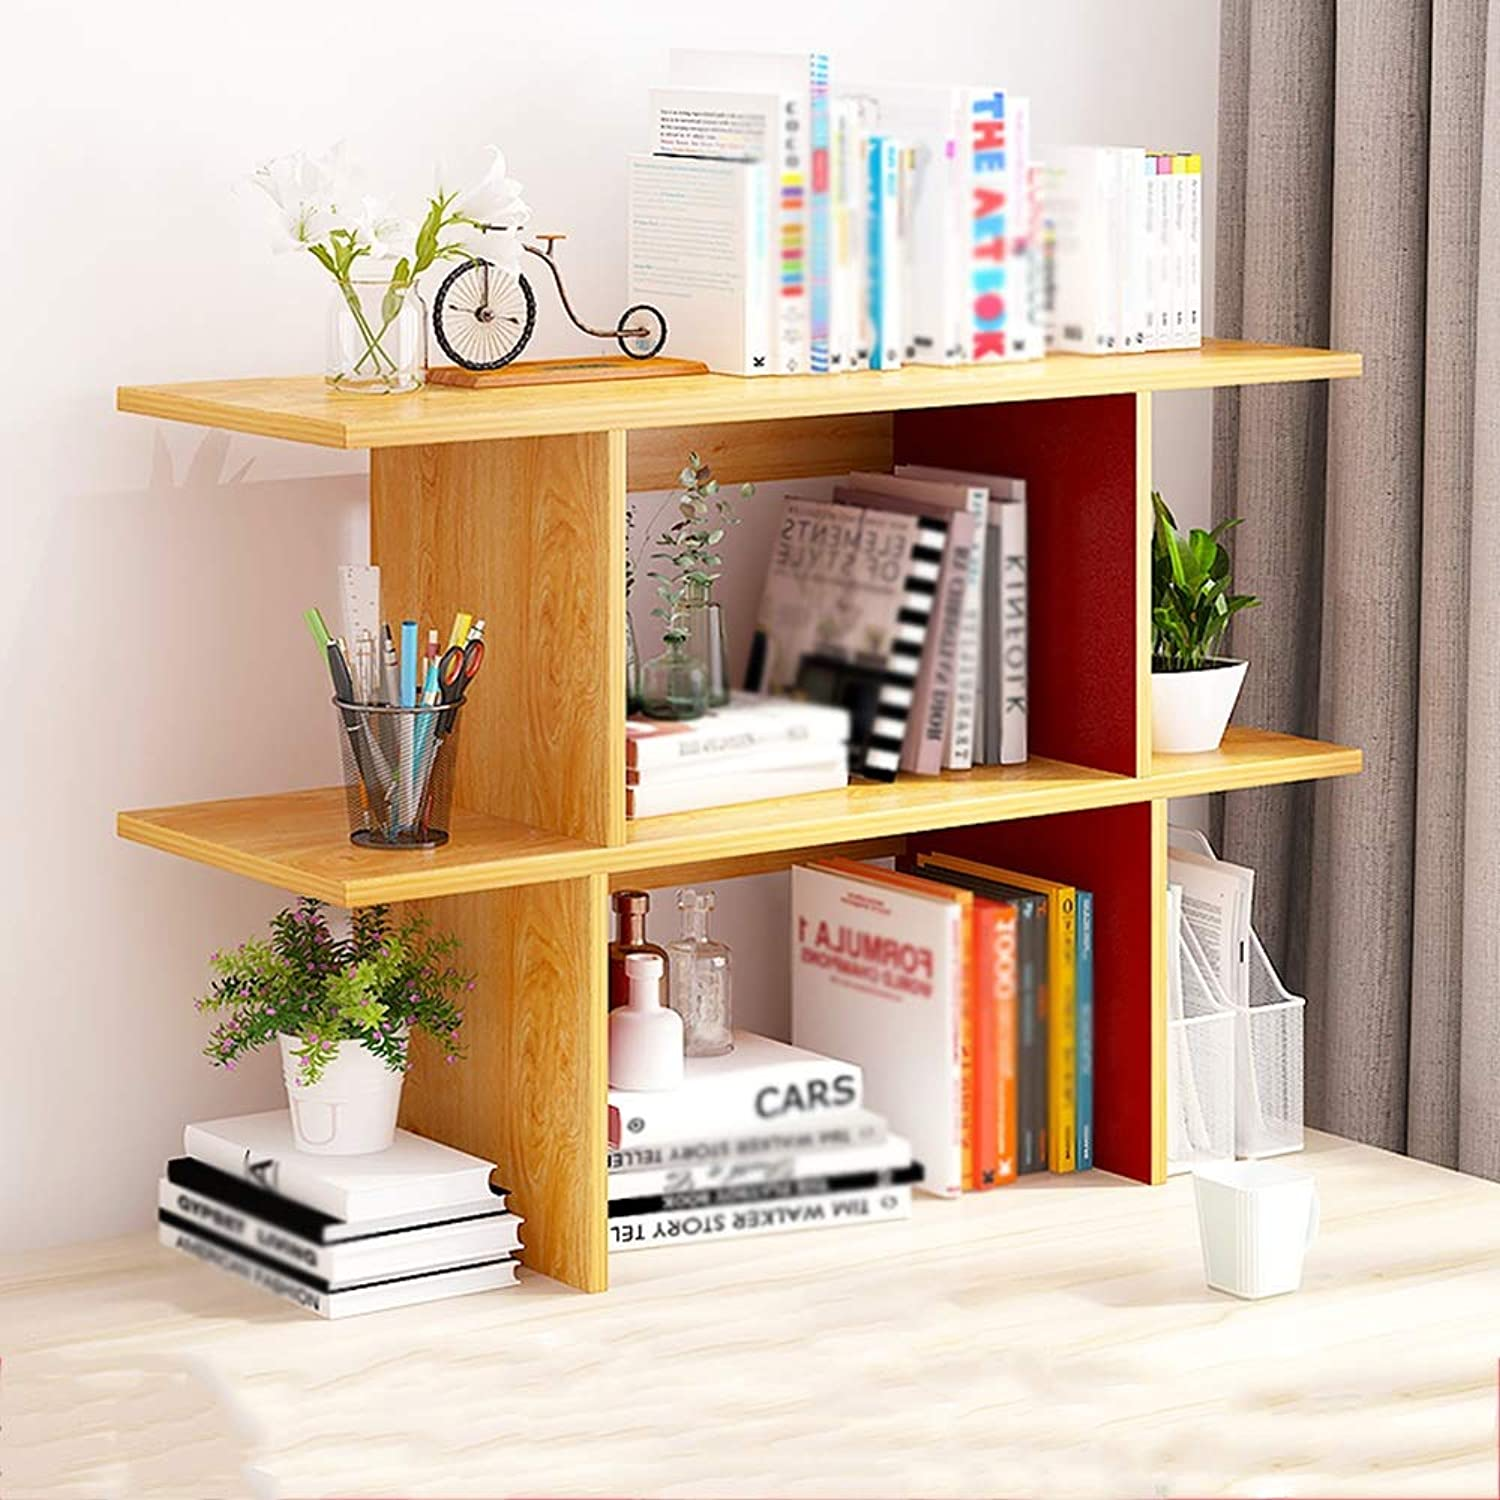 CL Simple Modern Desktop Solid Wood Shelf Multi-Function Bookshelf (Three Sizes to Choose from) Bookshelf (Size   B-90cm)